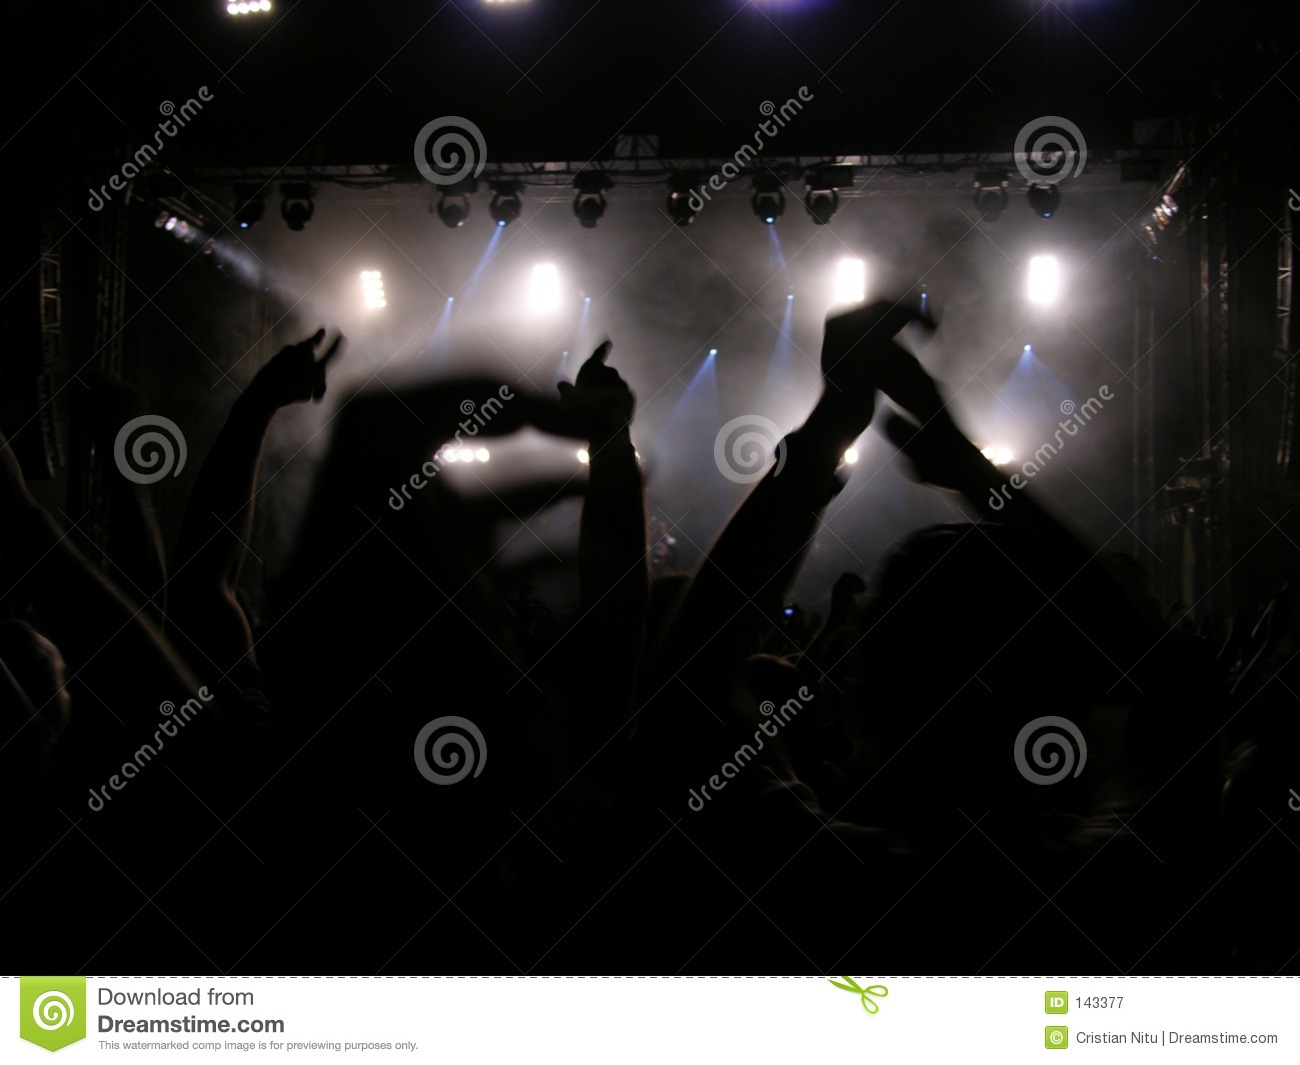 Concert everybody hands put up your